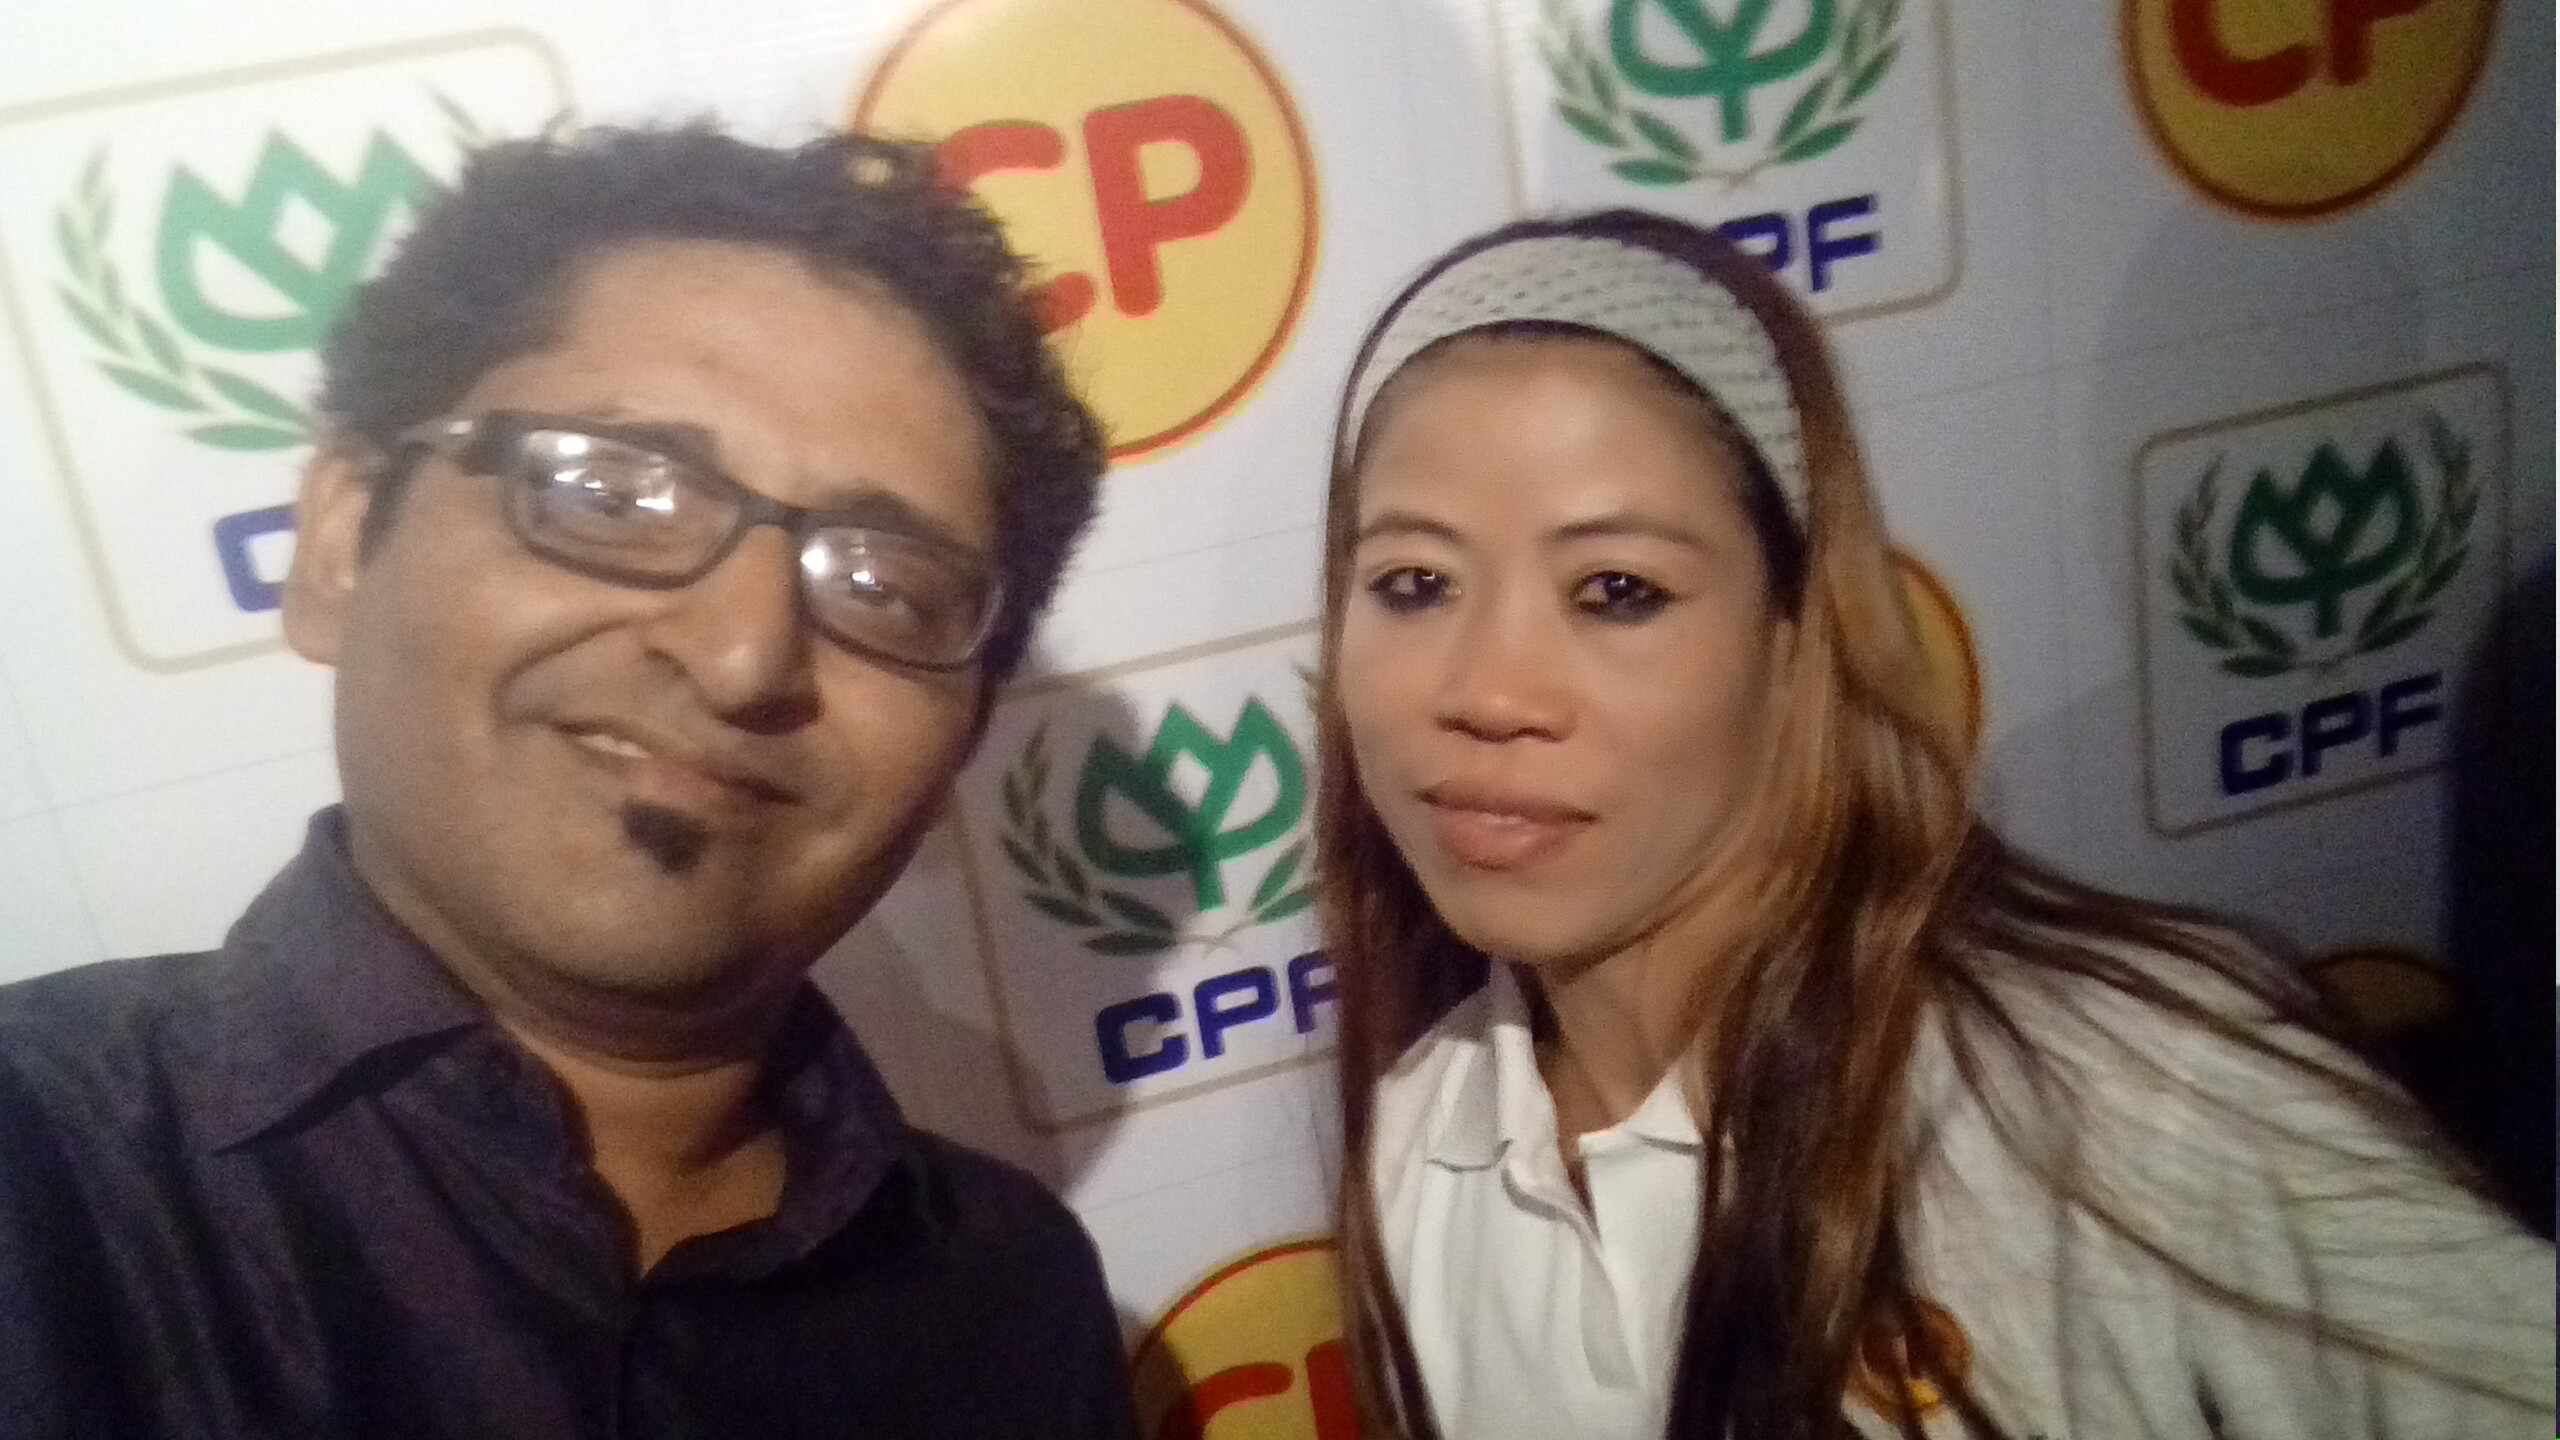 An Evening with Mary Kom – Charoen Pokphand Foods